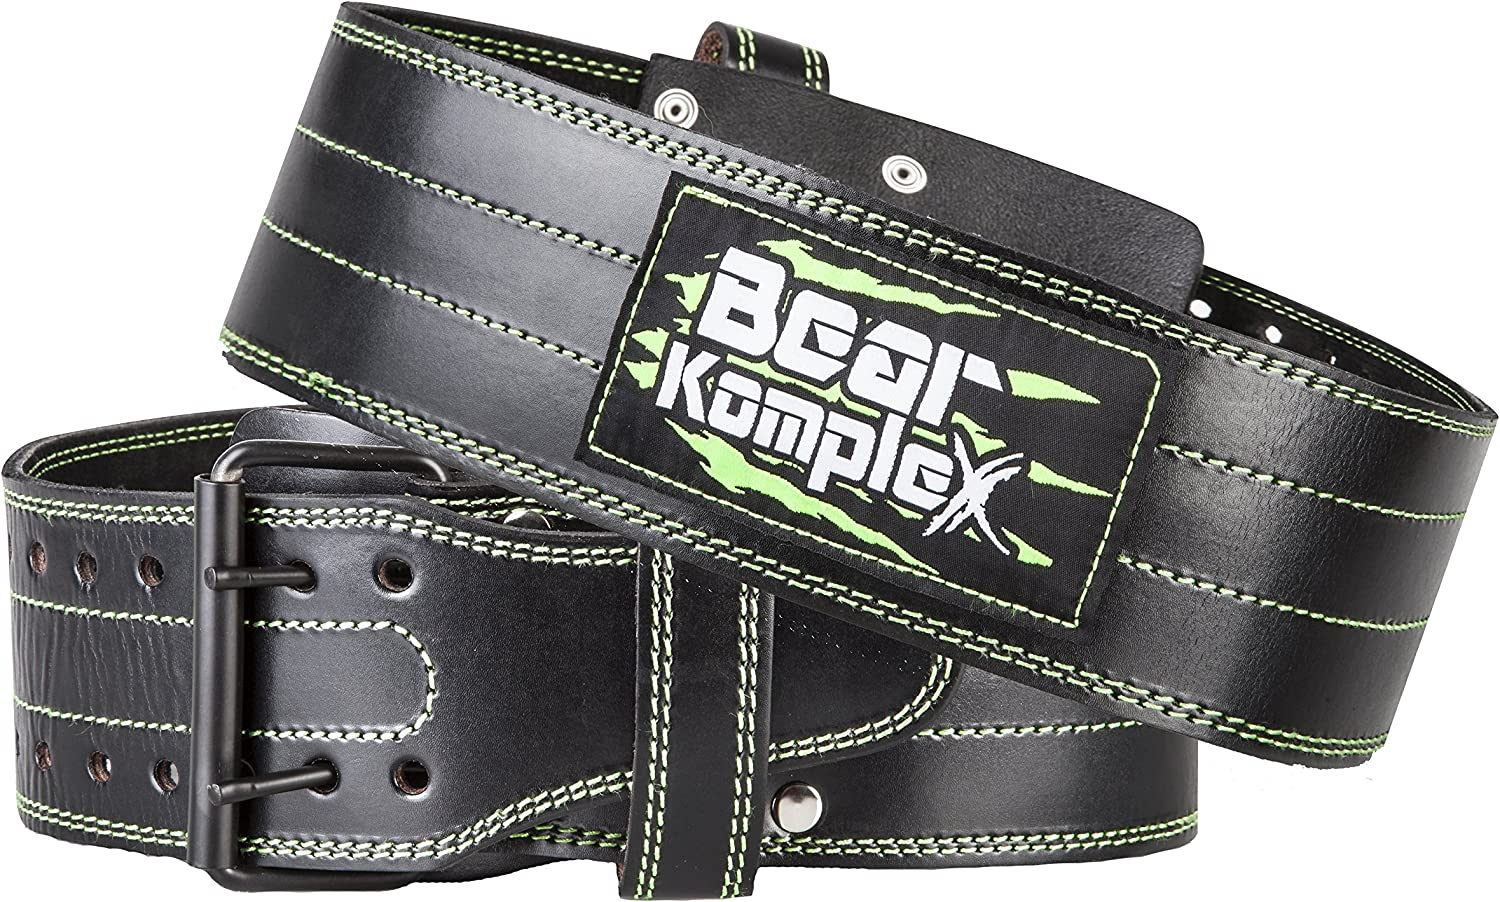 Bear KompleX Genuine Leather Adjustable Weightlifting Belt, Protection and Support for Back and Core During Crossfit Training, Olympic Athletes, and Powerlifting, 5 Millimeters Thick, Men and Women